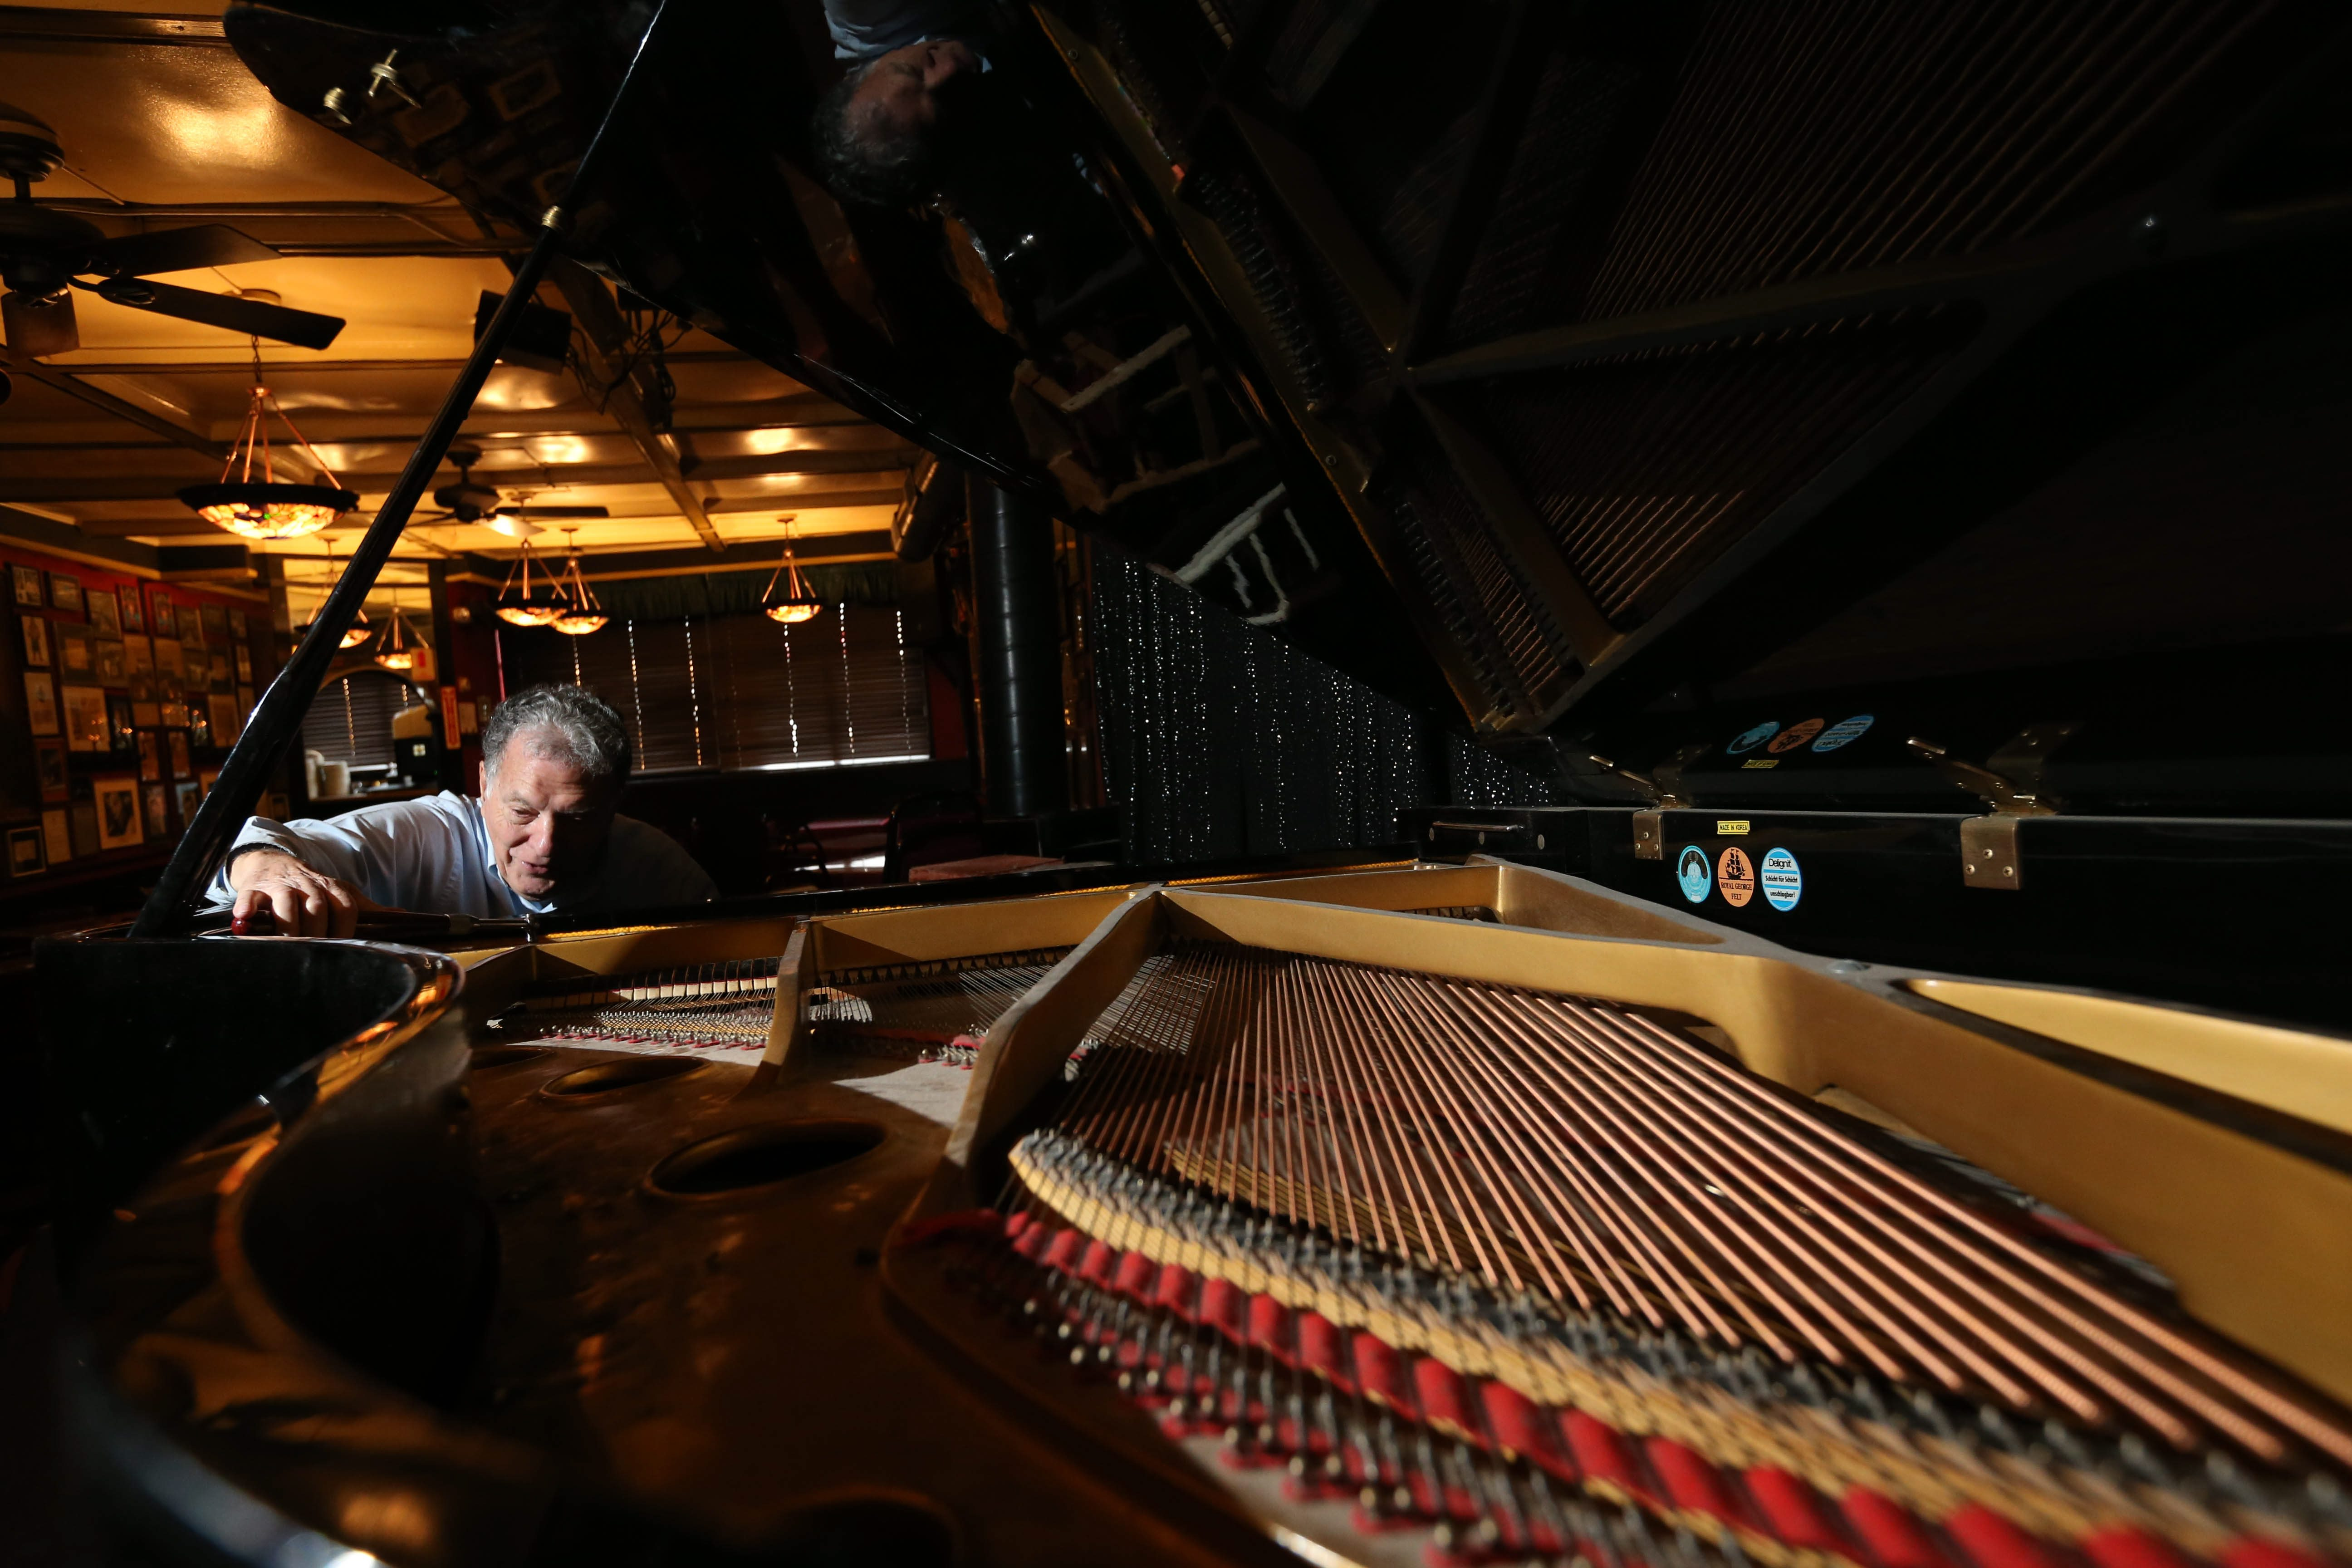 Vinny Tagliarino tunes the piano at the Anchor Bar in Buffalo earlier this month. The blind piano technician has been tuning the restaurant's piano since 1960.